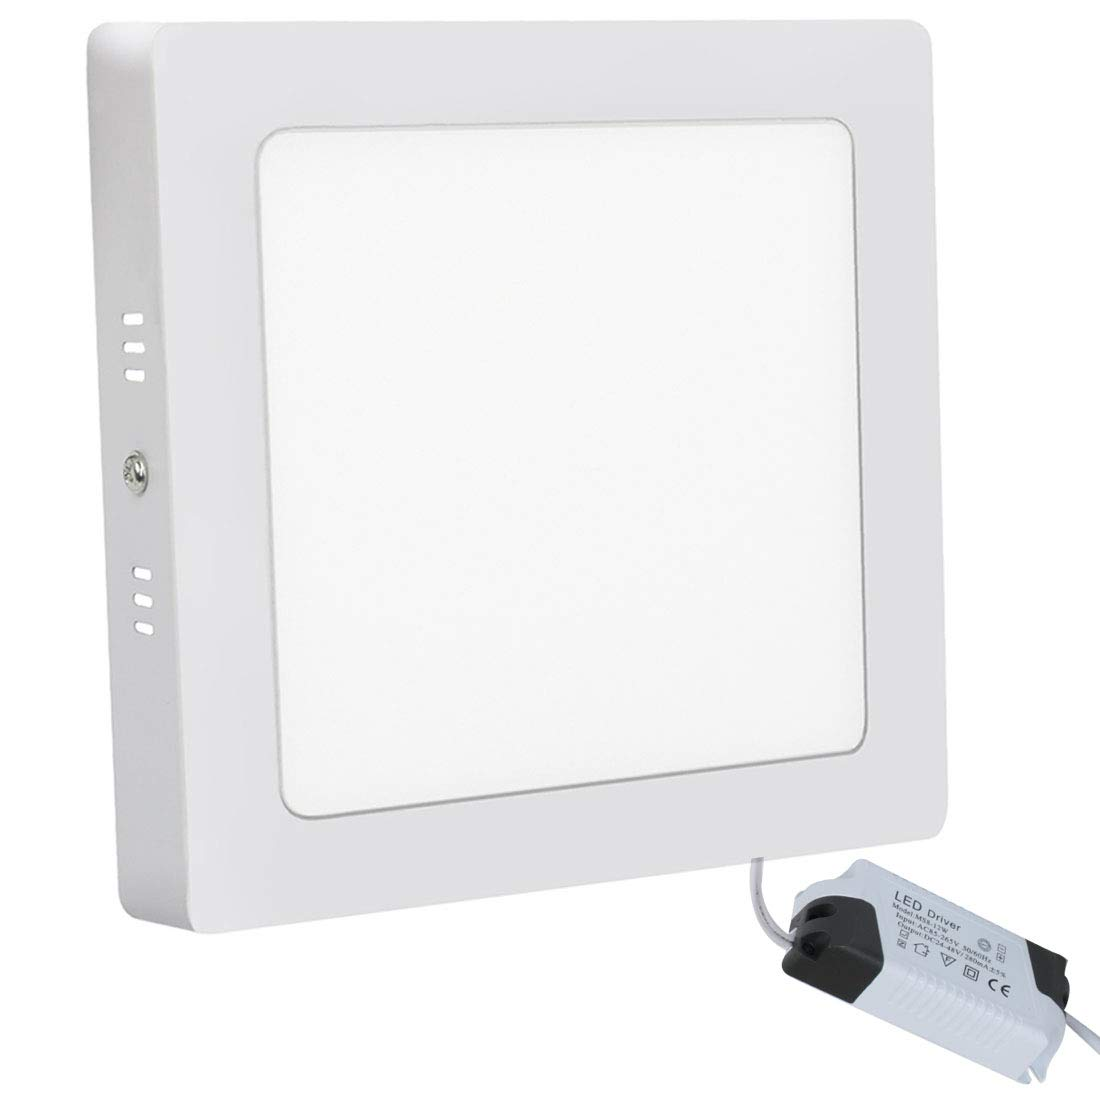 12W LED Ceiling Panel Light Square Lamp 3000K 720LM for Living Room Kitchen Corridor Conference Room Office Light Weight Energy Saving Warm White XYD